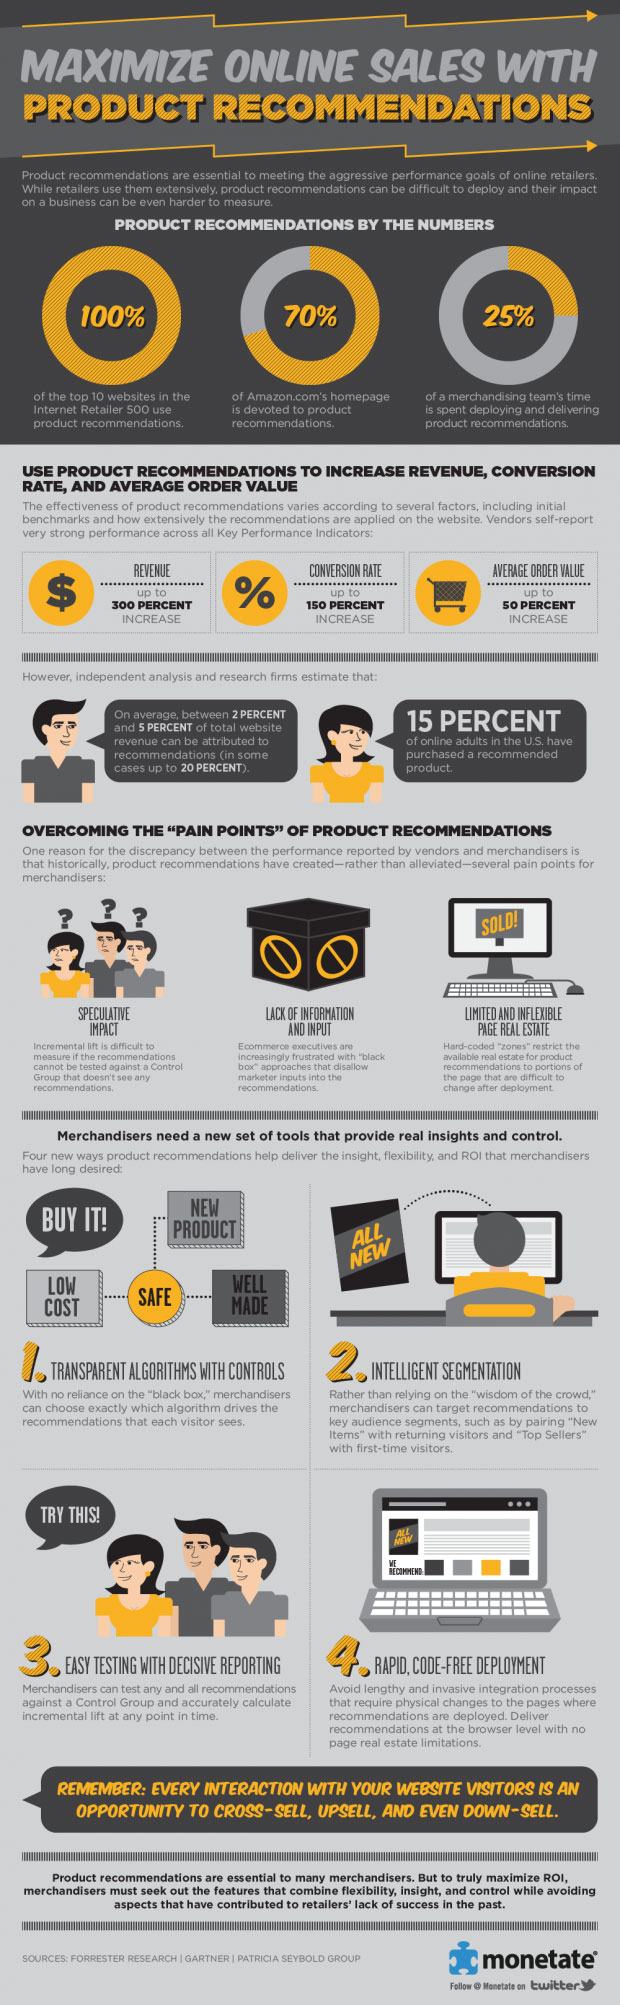 Infographic about product recommendations in ecommerce